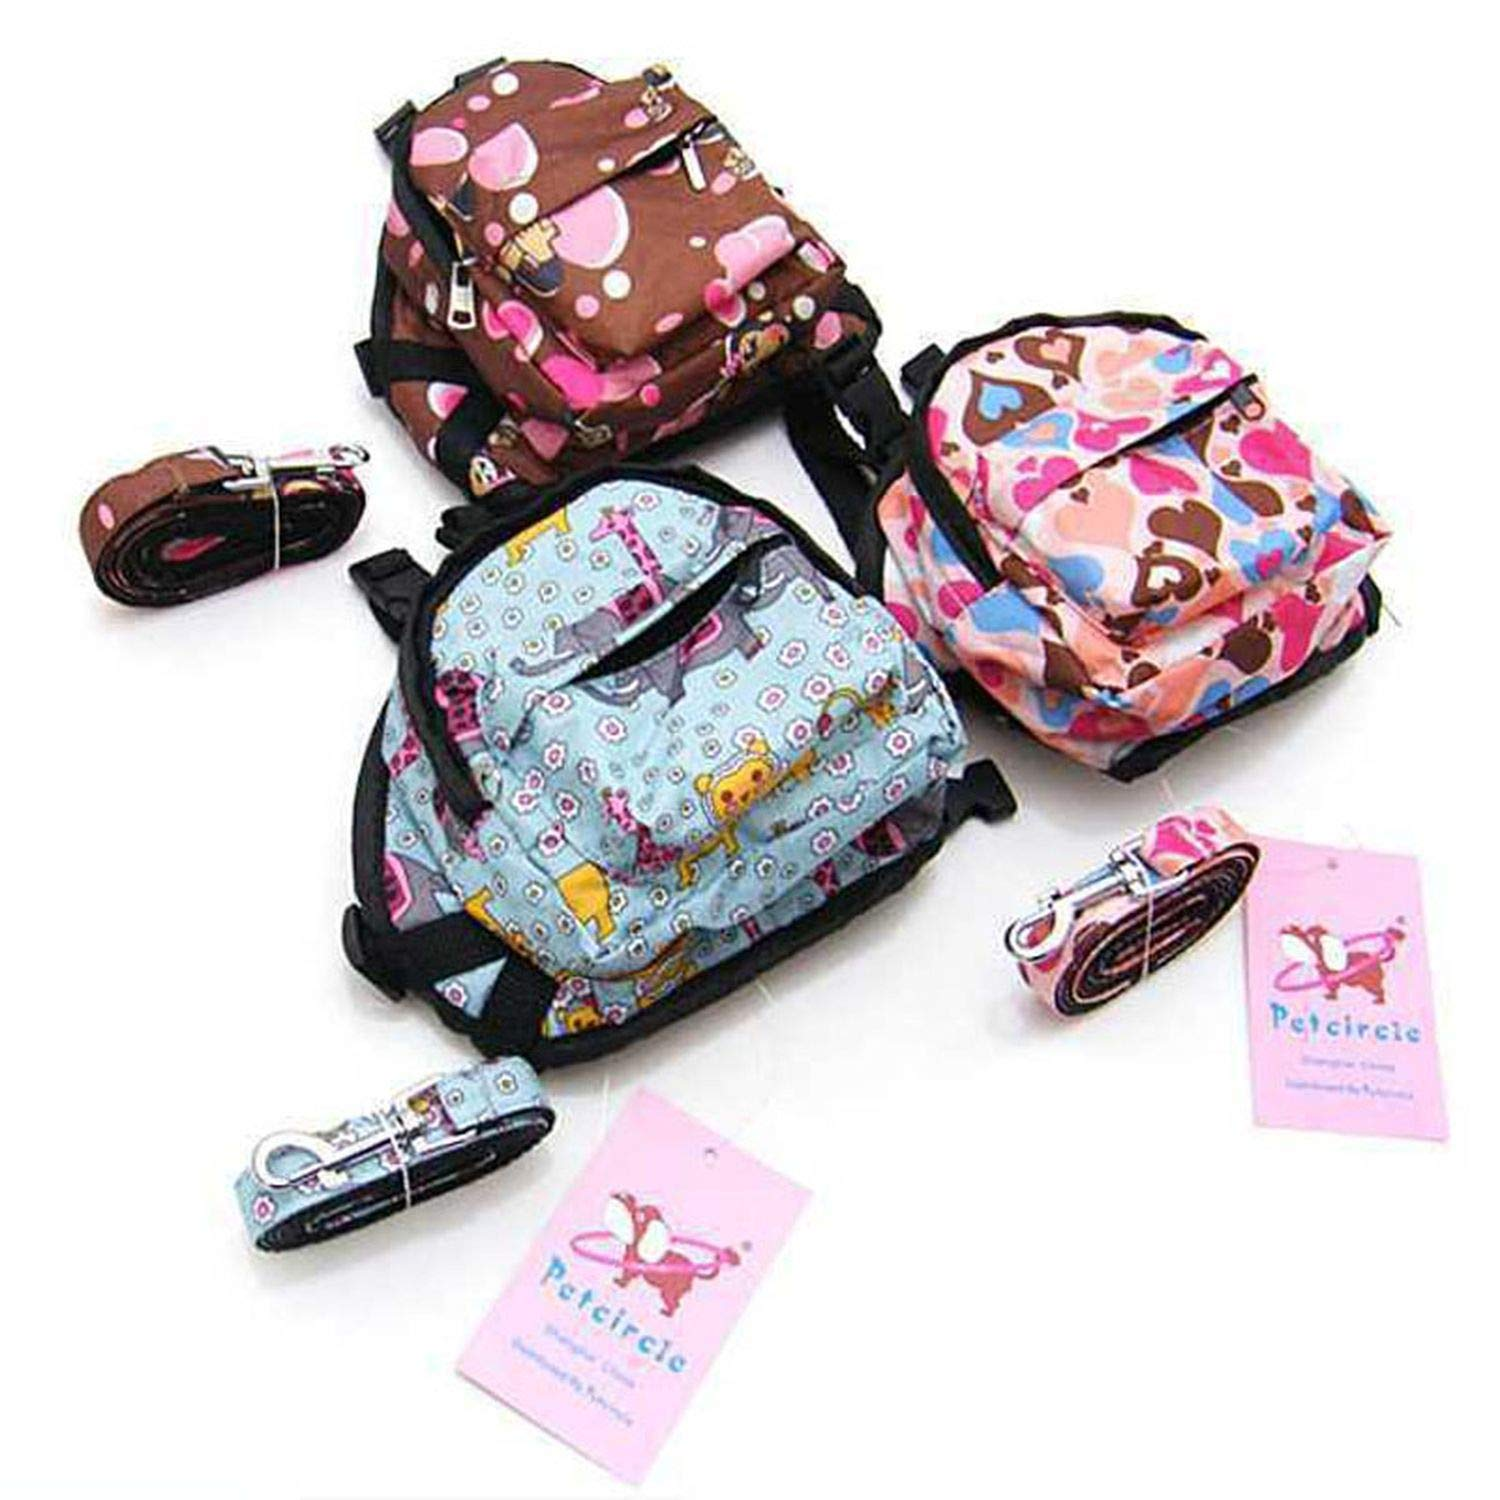 Amazon.com : Cartoon Cute Dog Backpack Canvas Multicolor Pet Dog Carrier Bags Puppy School Bag Chest Backpack Dogs Cats, Pink, S : Pet Supplies